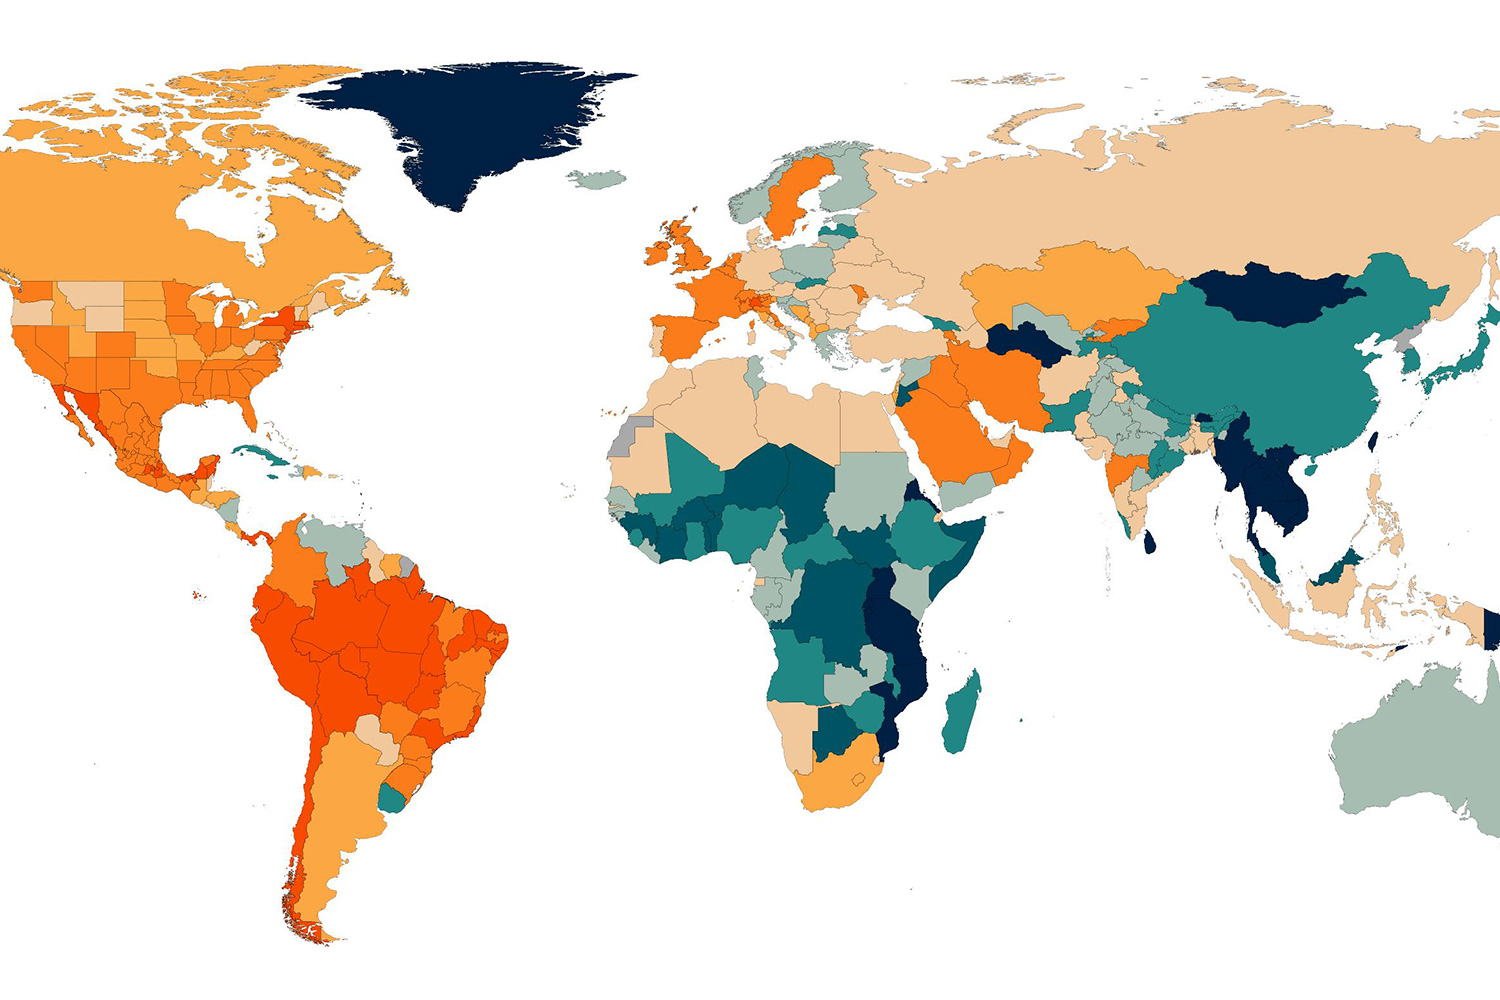 This map shows the ranking of COVID-19 as of Sept. 14, 2020 among all causes of death in the Global Burden of Disease study (rankings assume that all causes are evenly distributed through the year). The image shows a map with countries colored according to how high COVID-19 ranks as a cause of death. IHME image